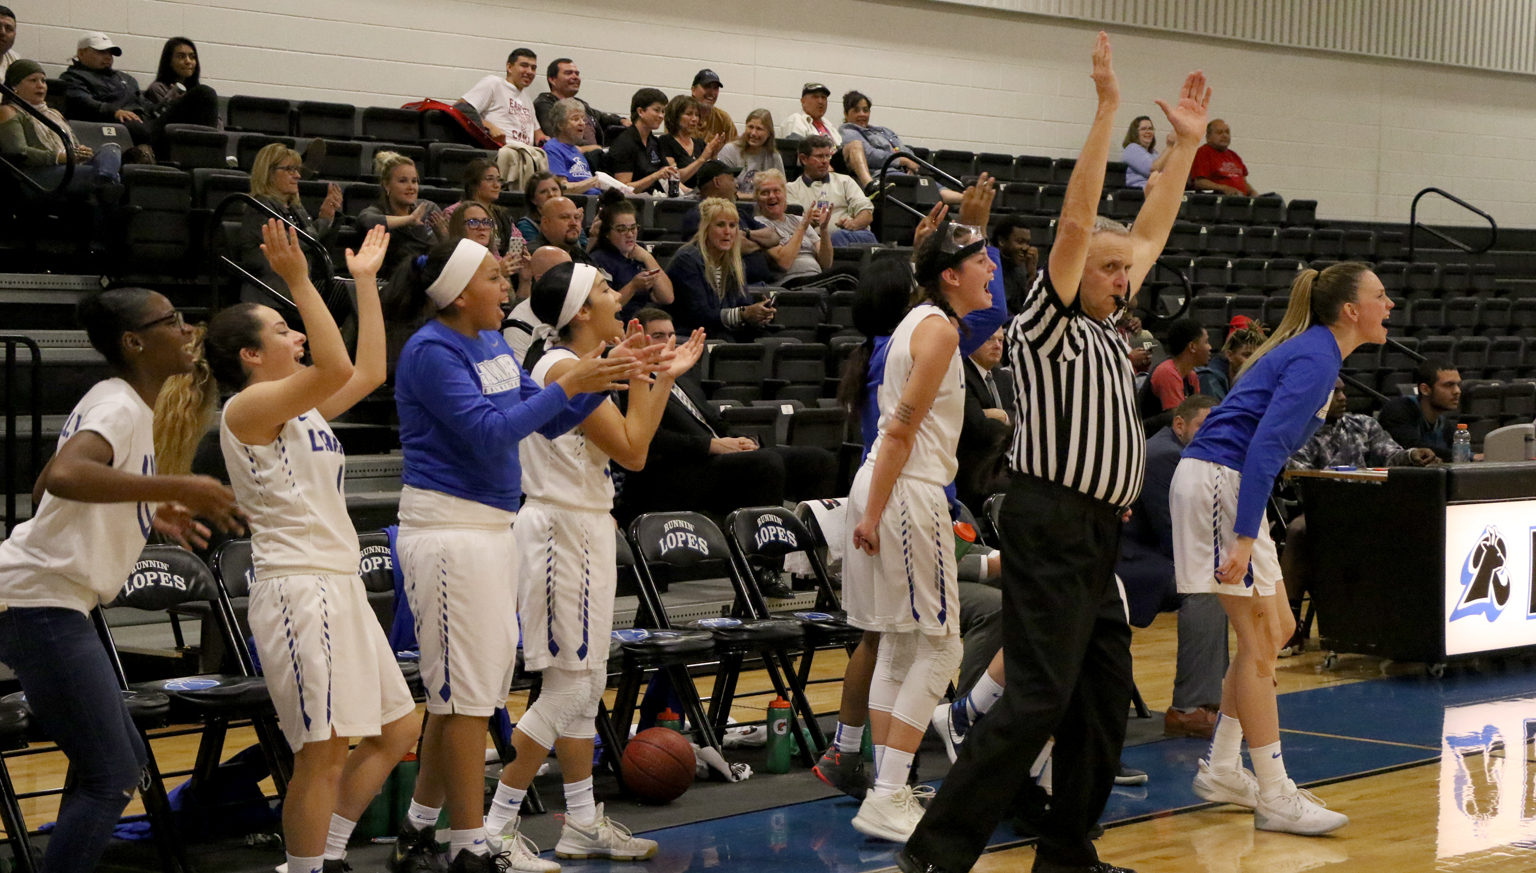 Lopes bench cheers